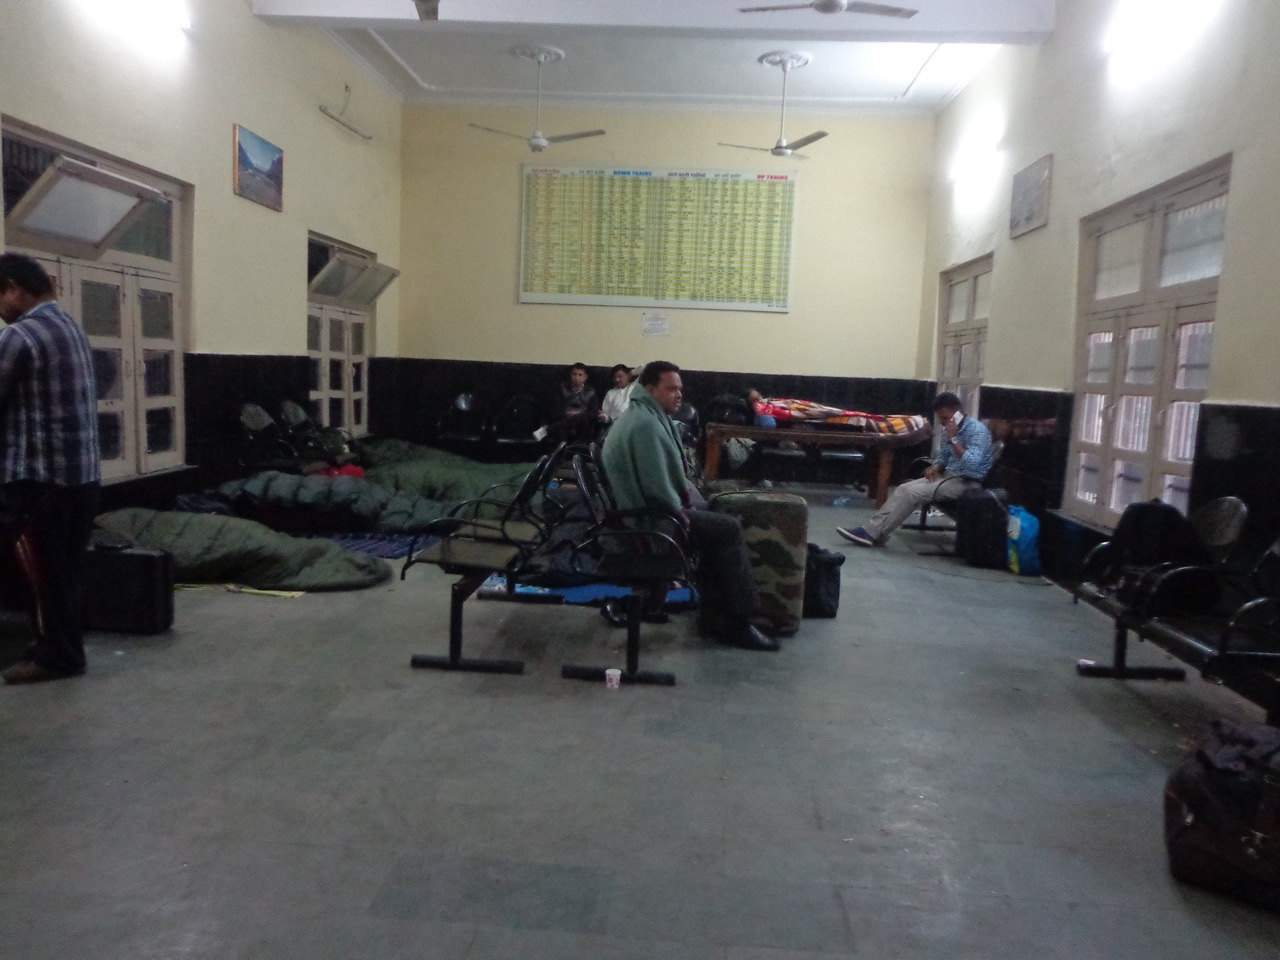 The waiting room at Pathankot Cantt. station was pretty clean.